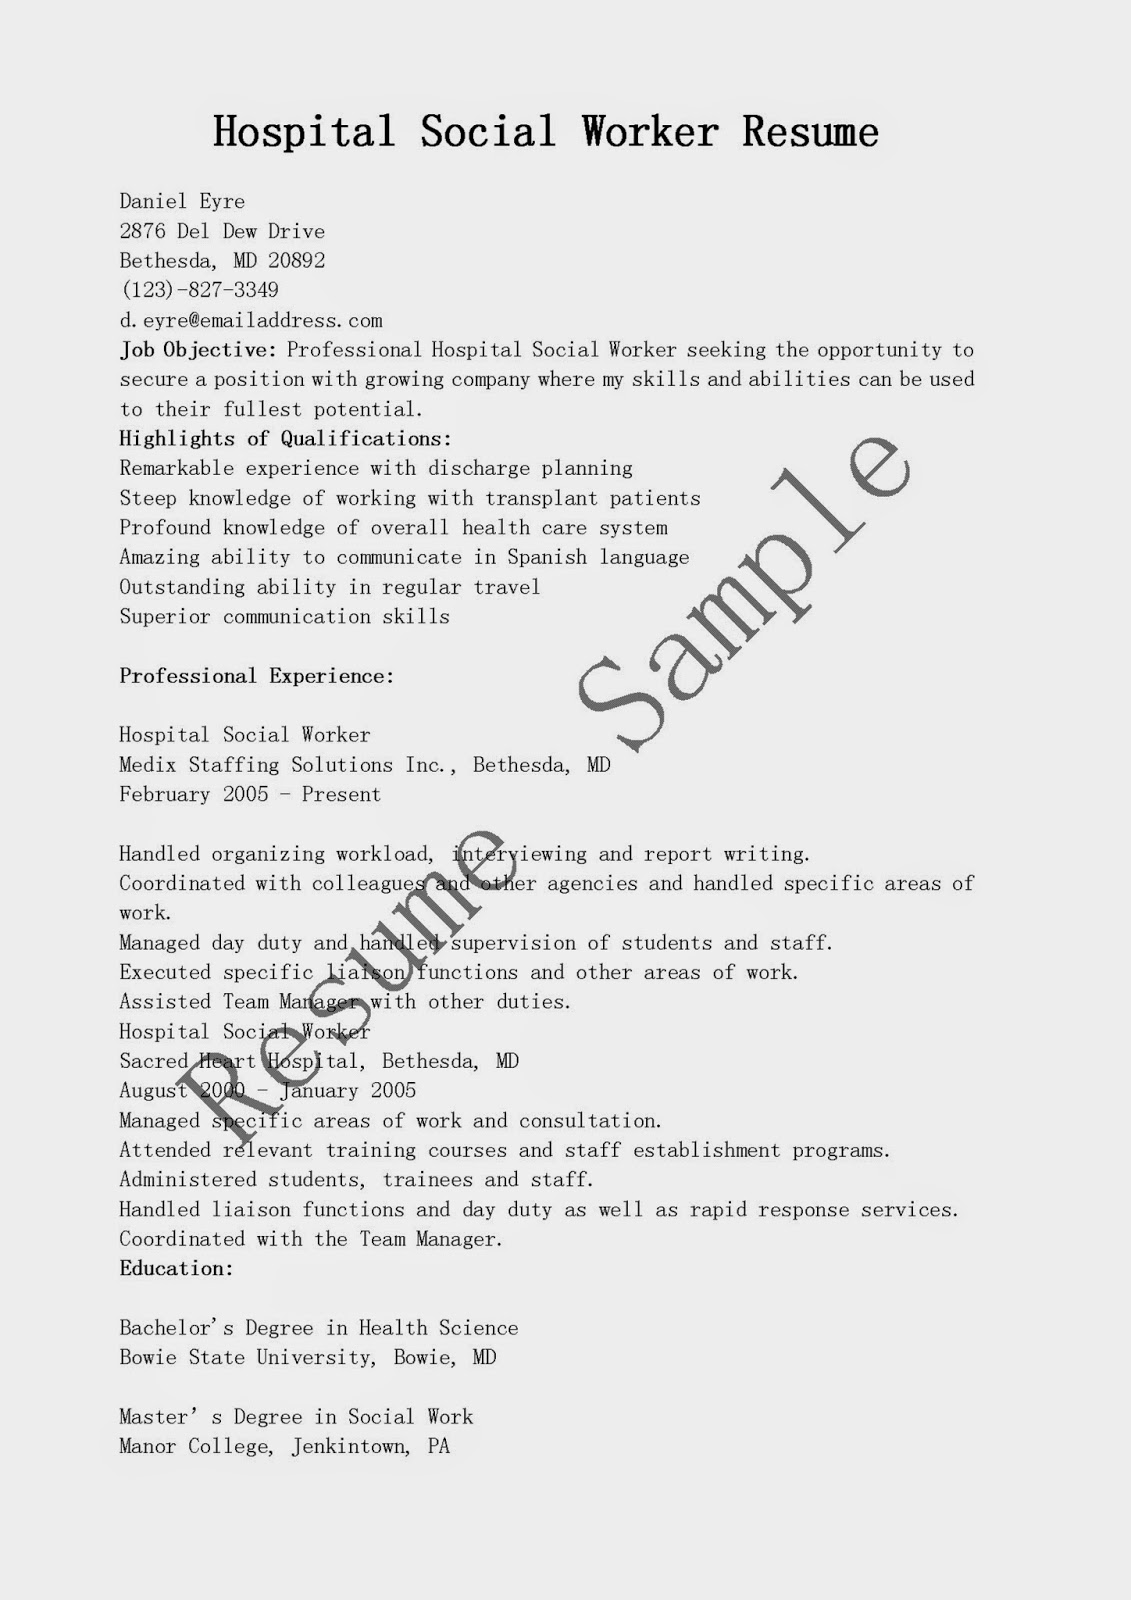 sample resume of hospital social worker